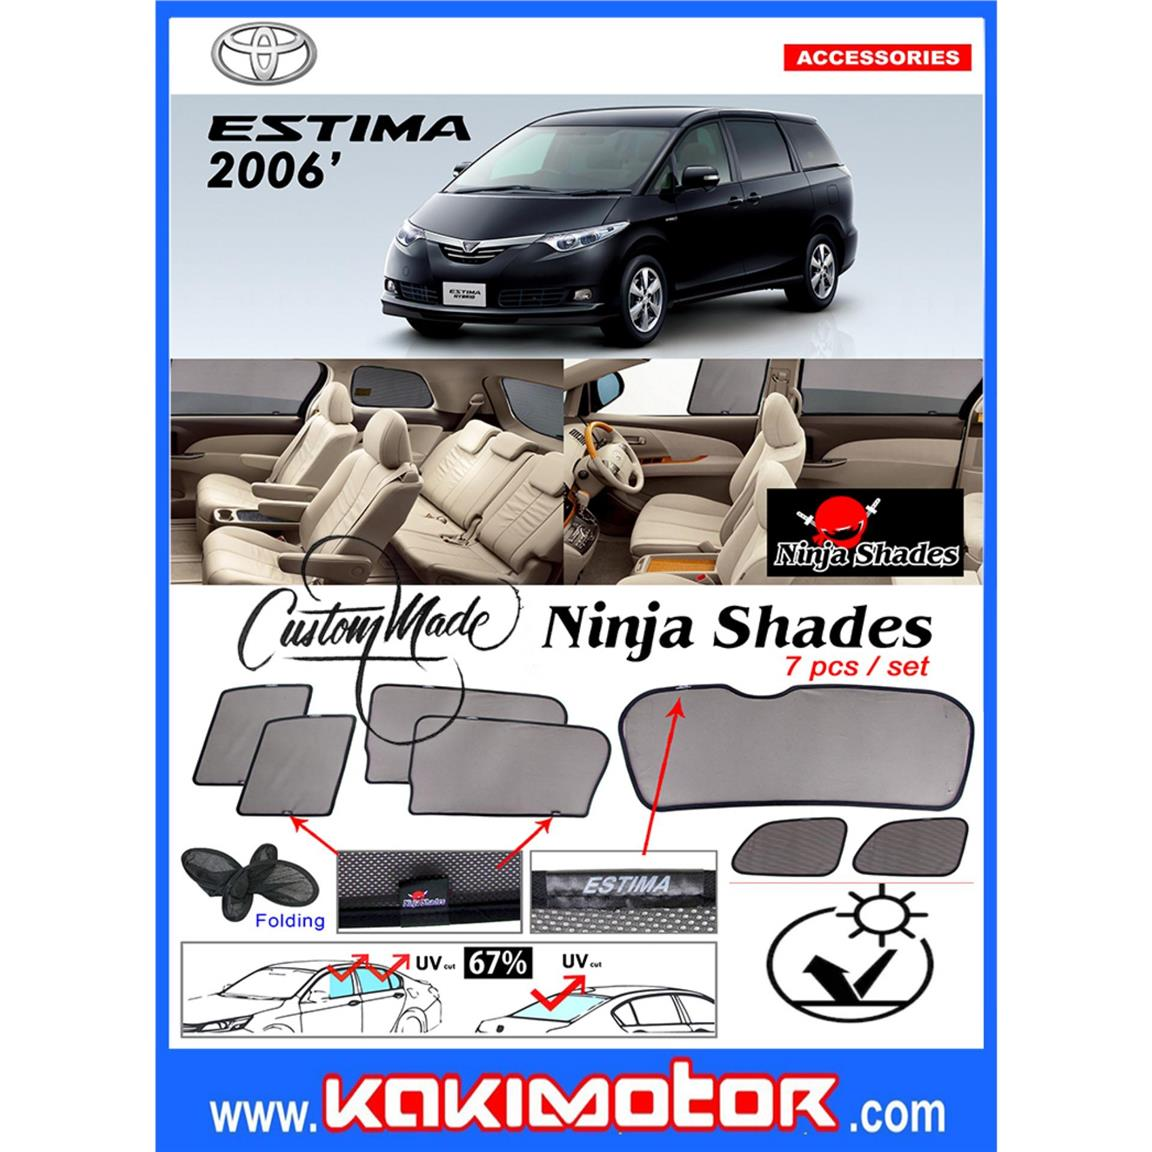 NINJA SUNSHADE FOR TOYOTA ESTIMA 2006(7PCS)